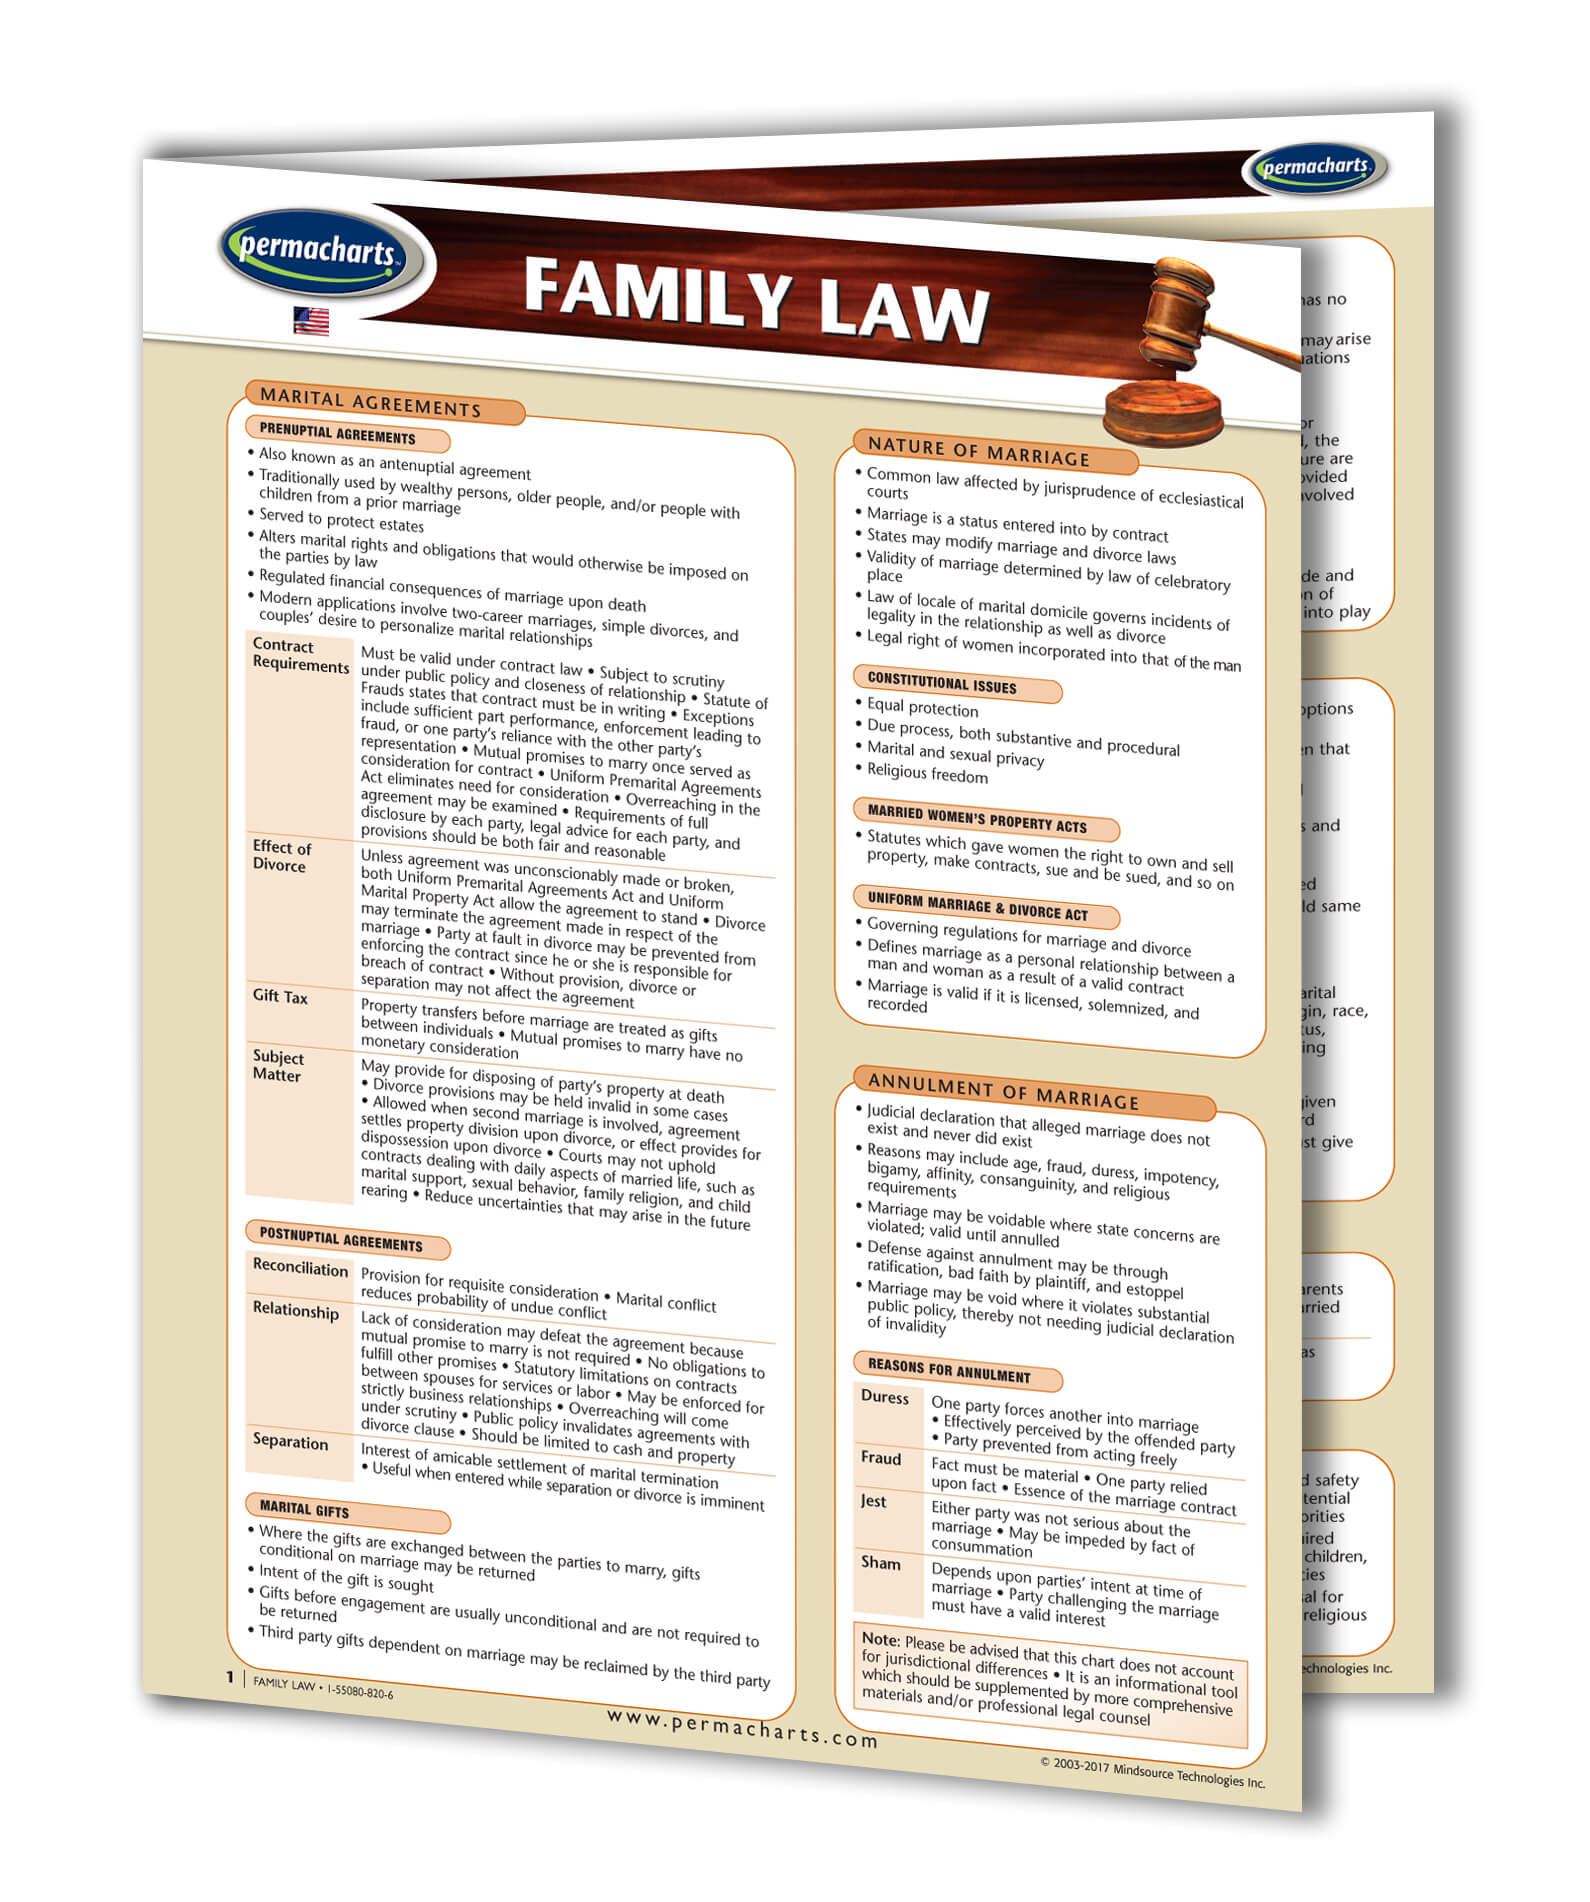 Family Law: American Family Law Guide